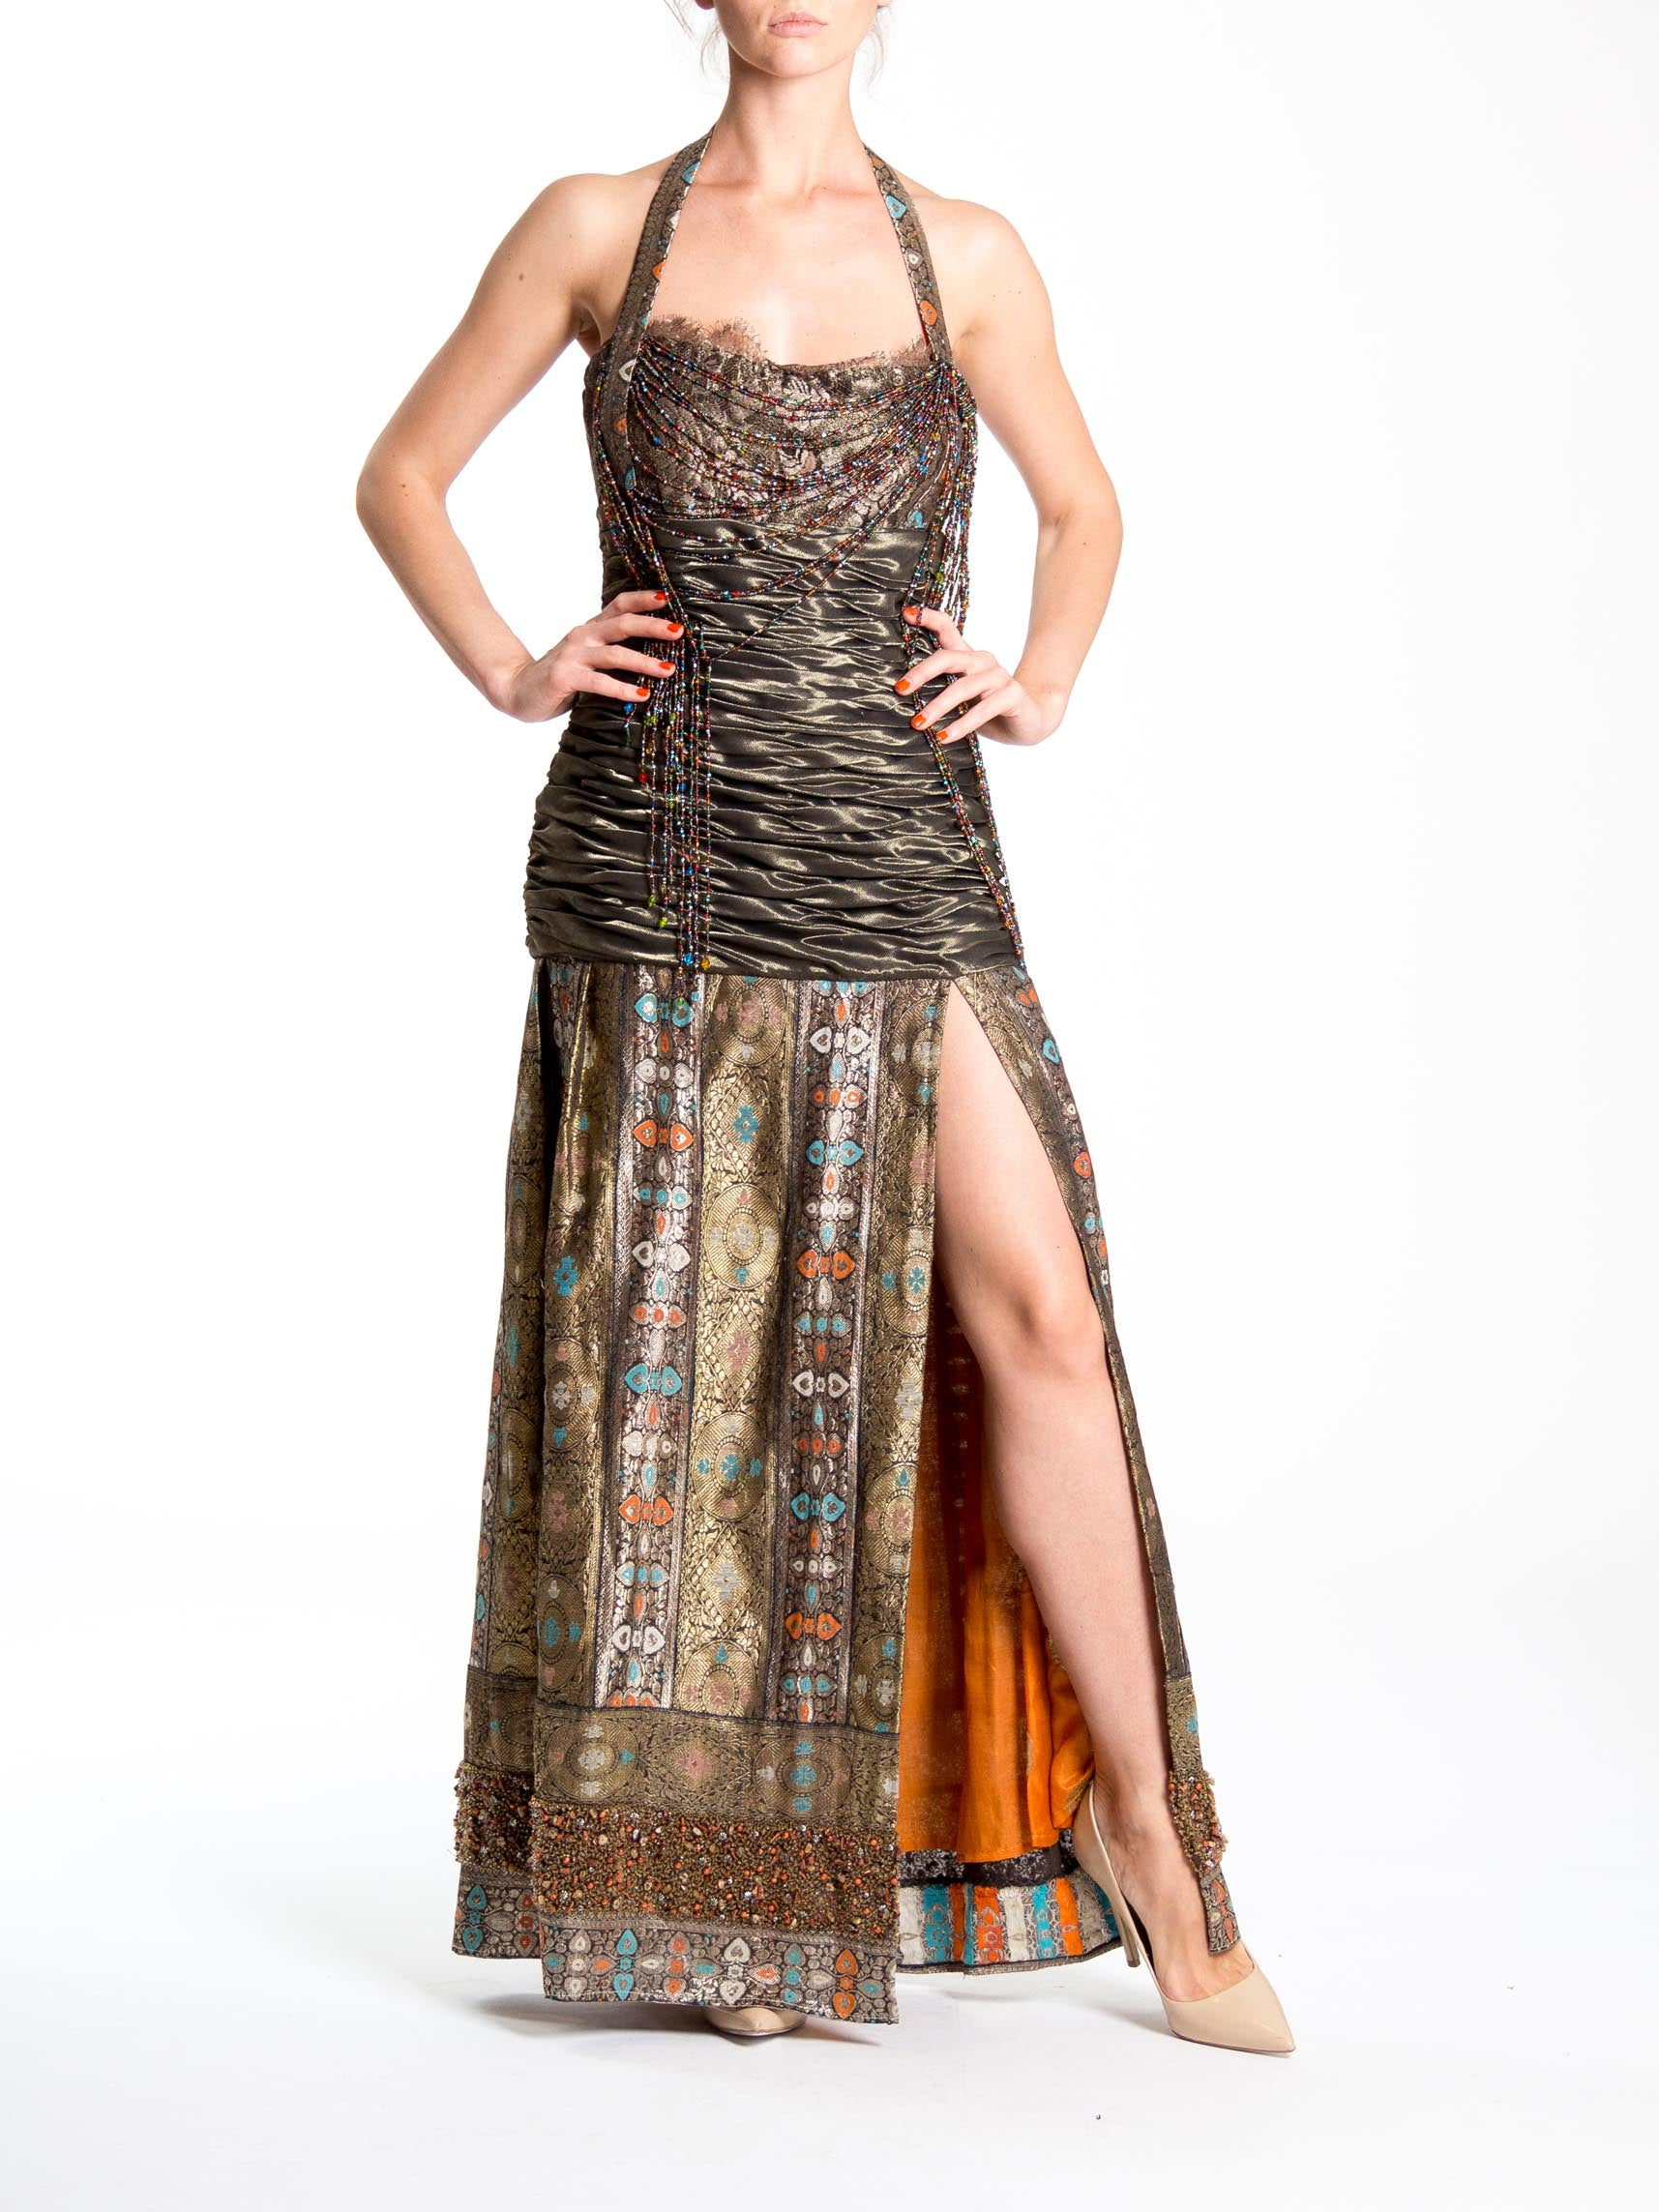 MORPHEW COLLECTION Haute Couture Beaded Gown With High Slit Made From Antique Indian Sari Silk Woven Metal Fibers